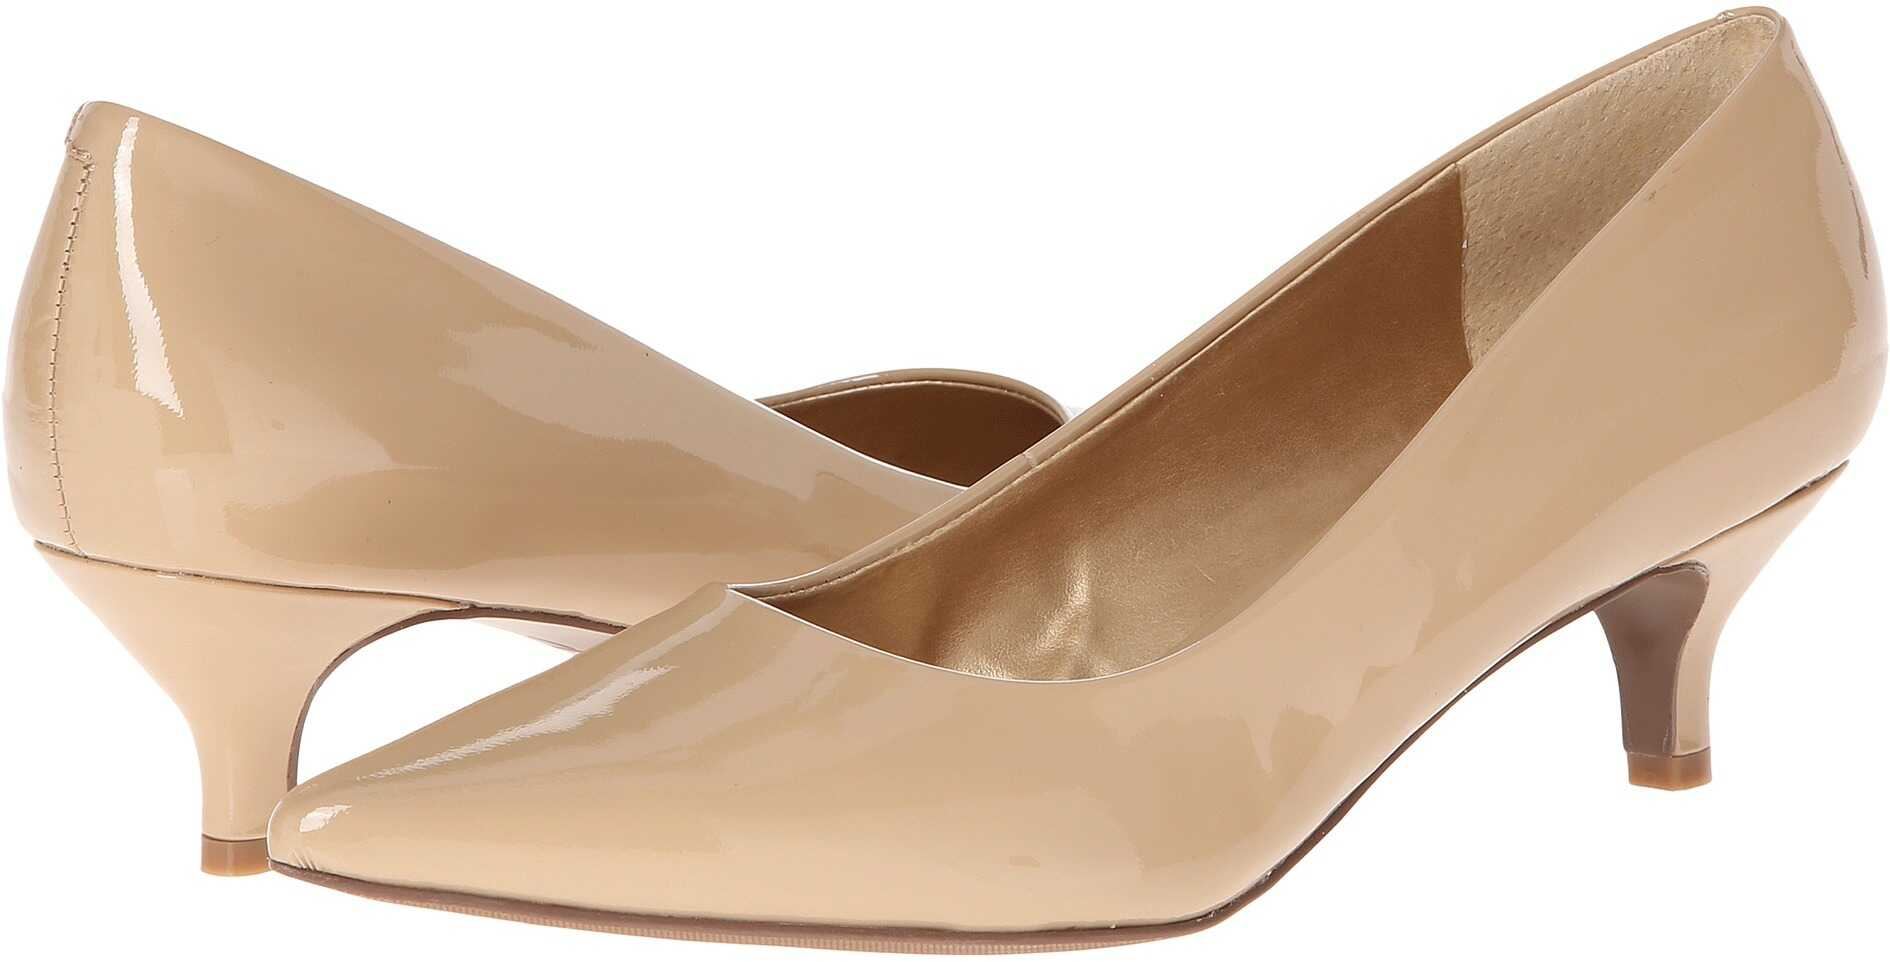 Trotters Paulina* Nude Patent Leather